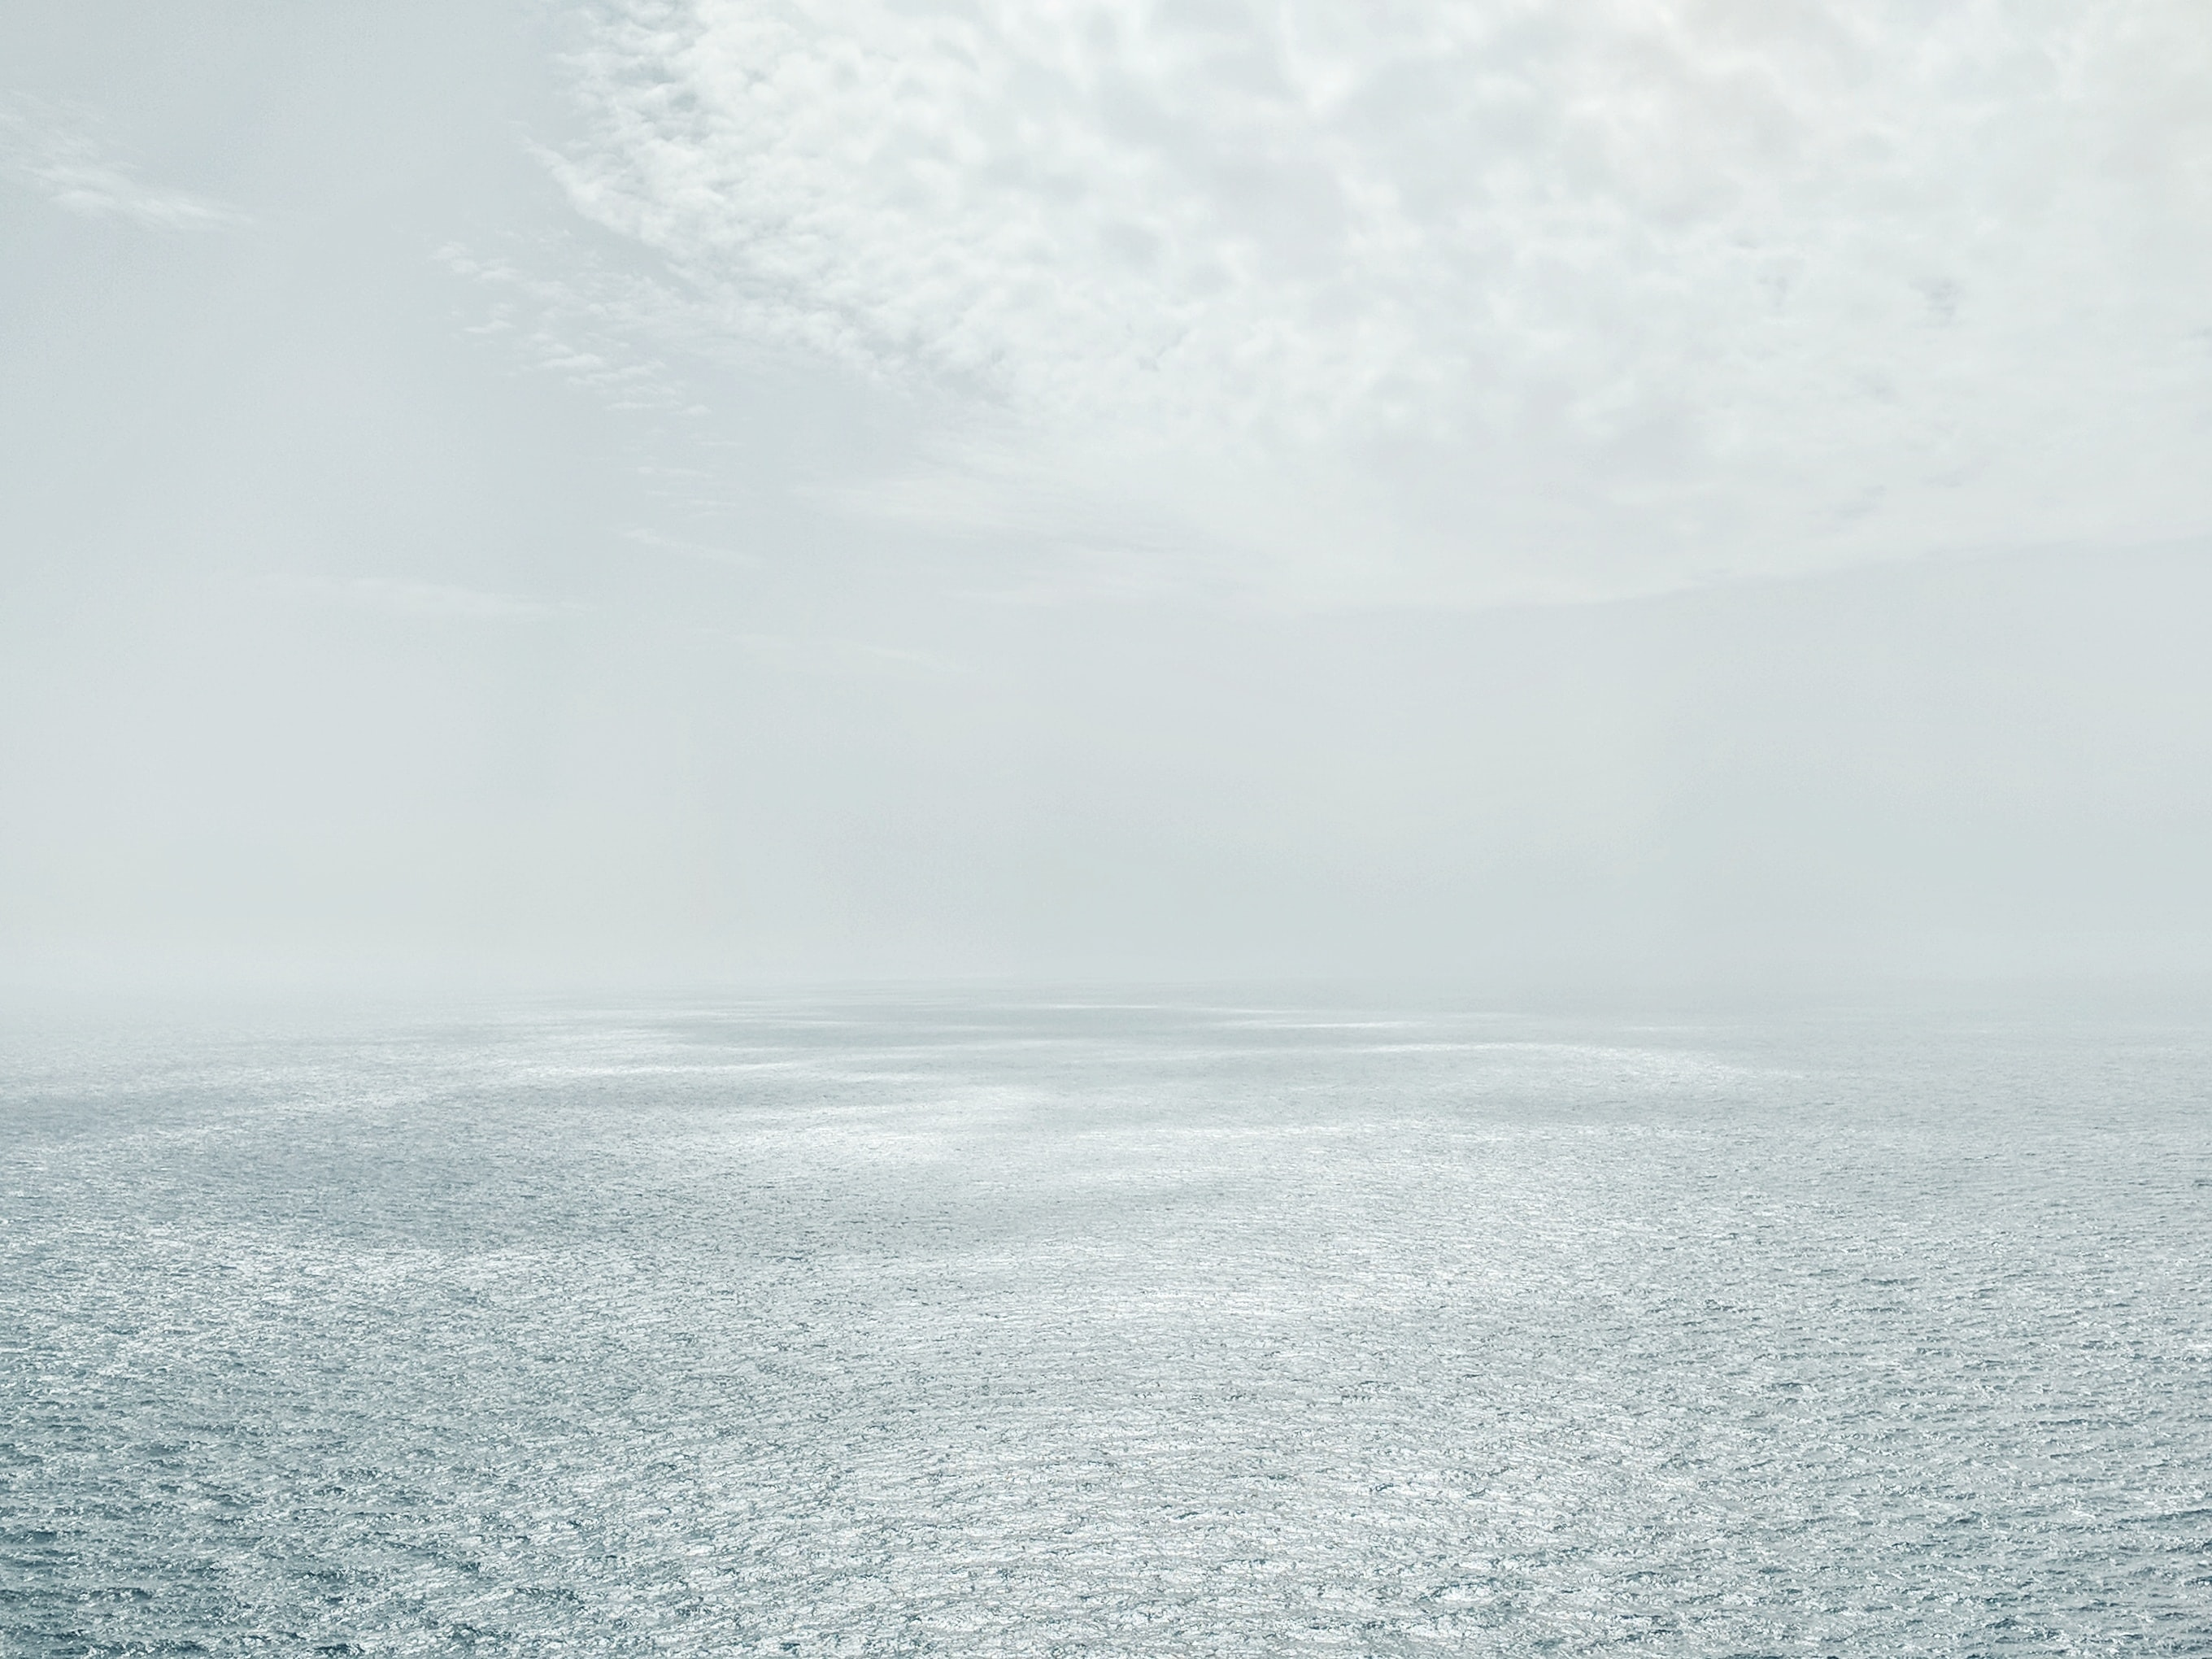 photo of empty ocean during day time